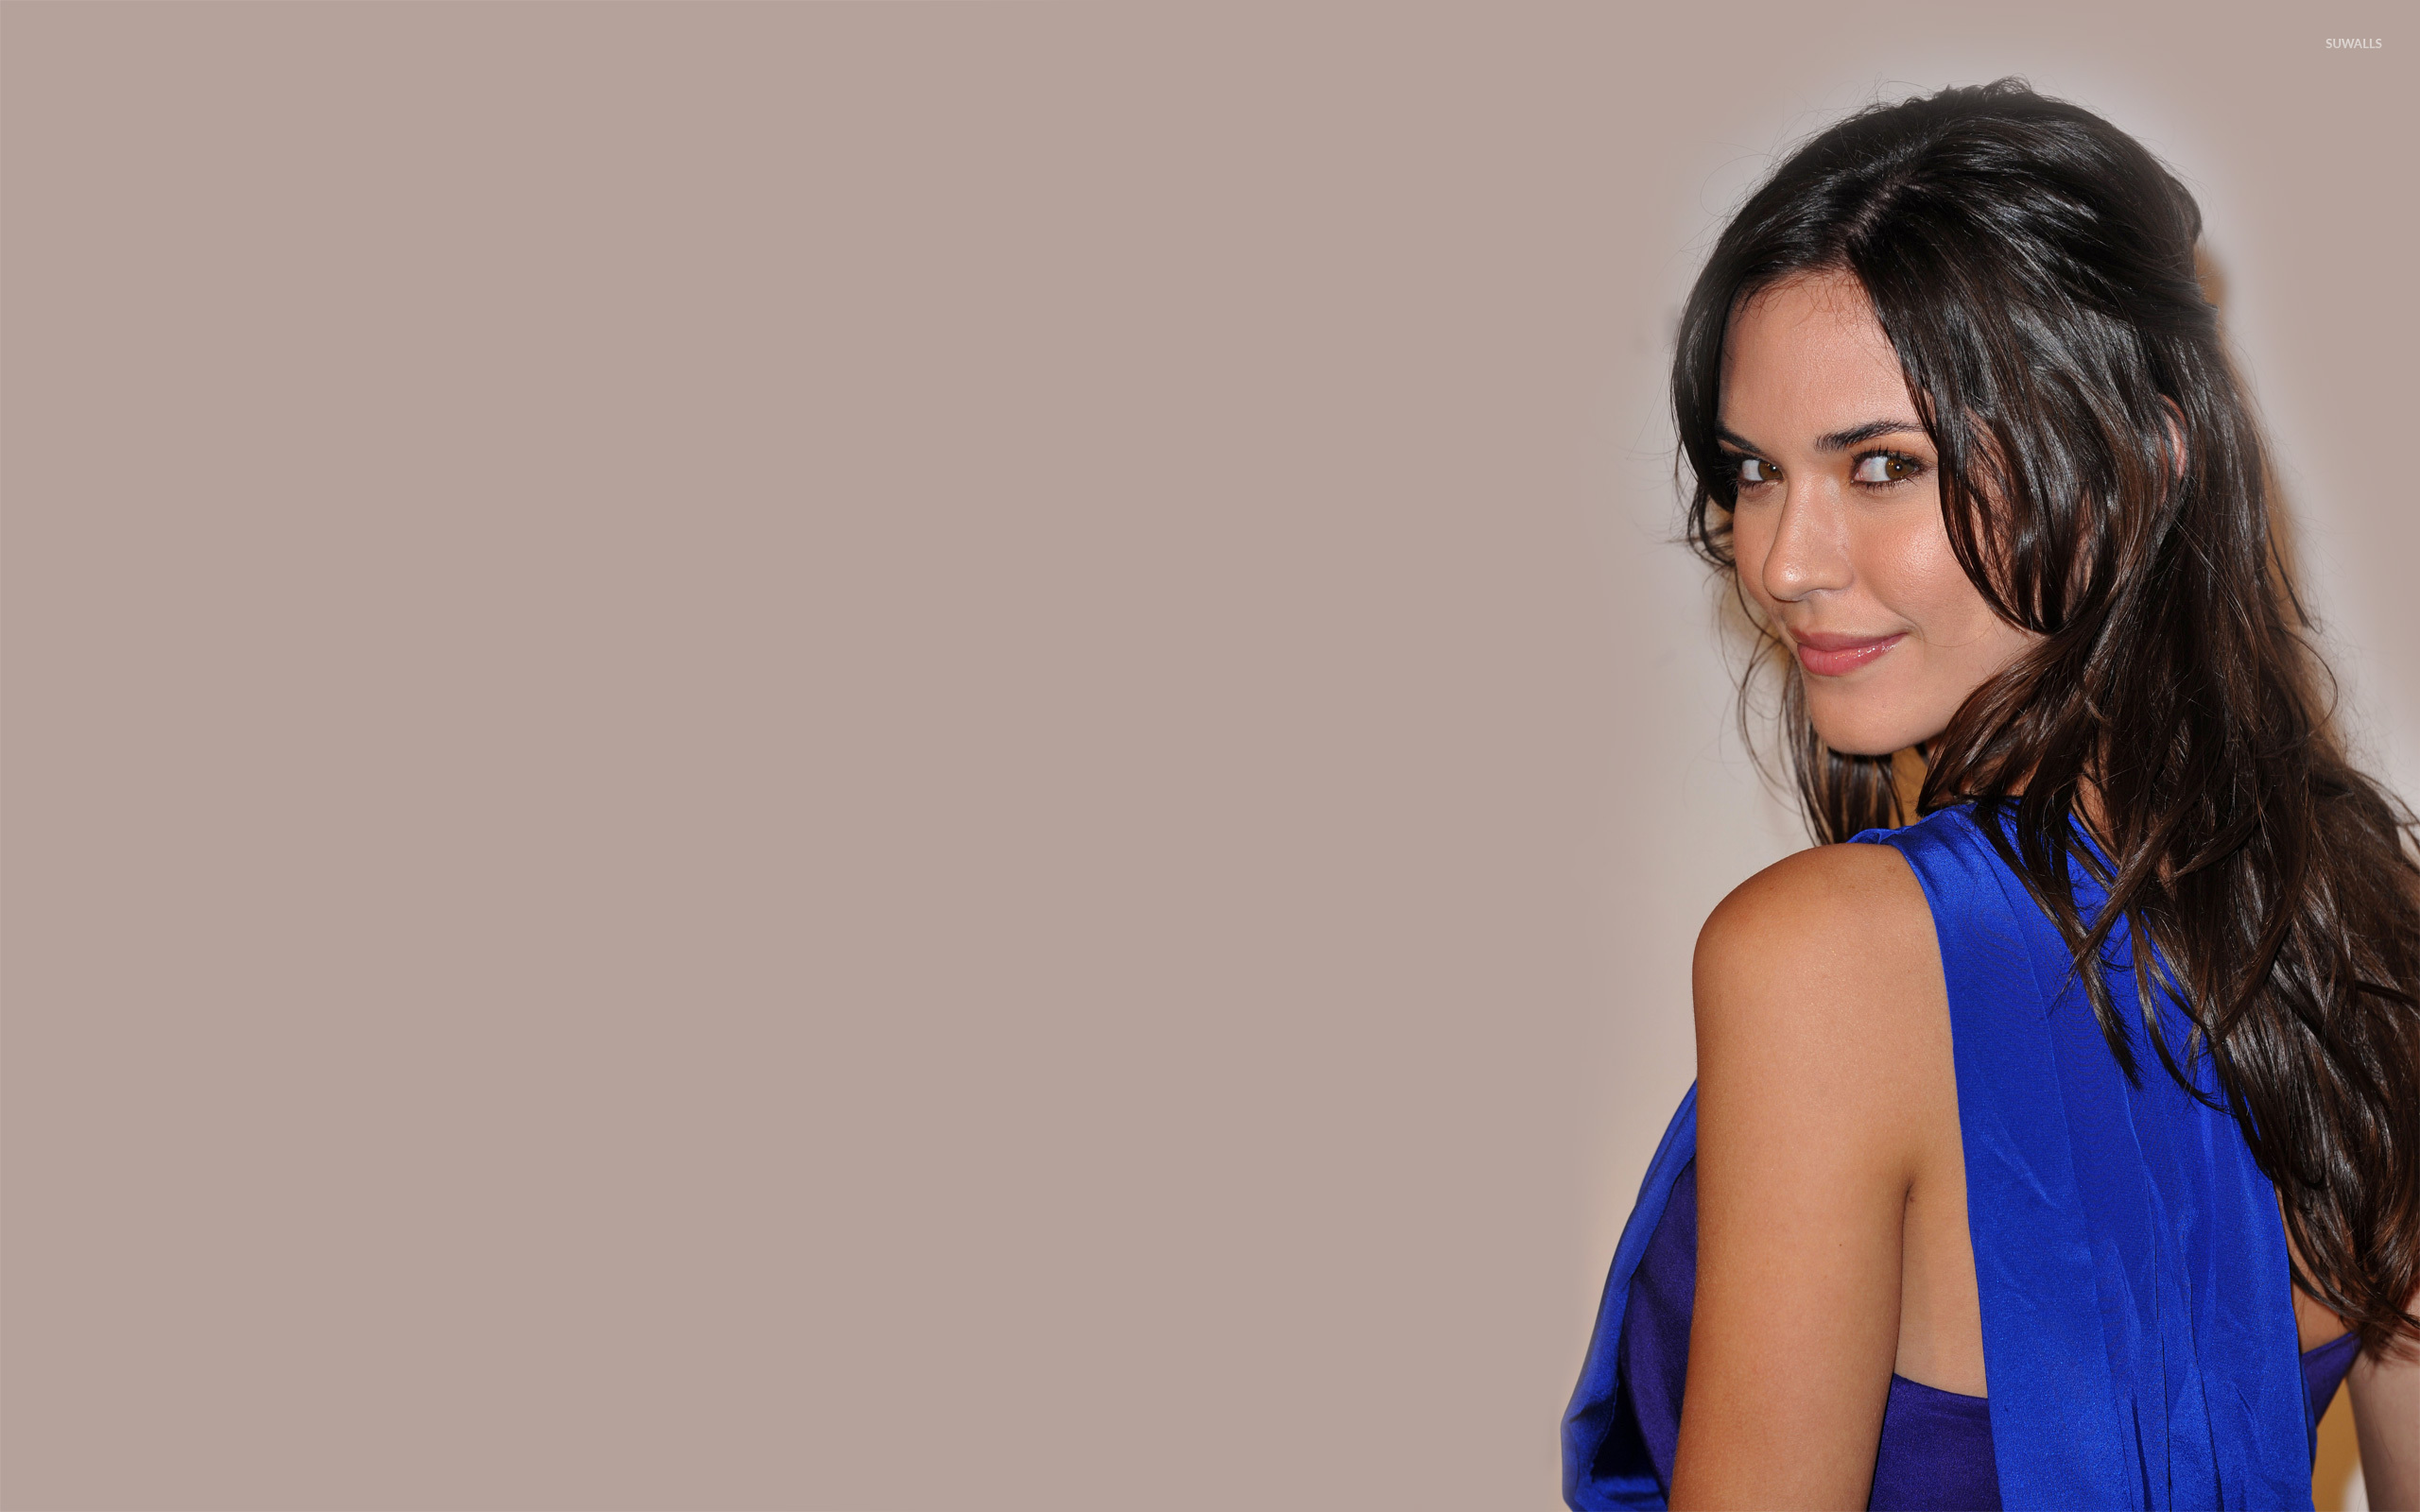 2560x1600 - Odette Annable Wallpapers 28